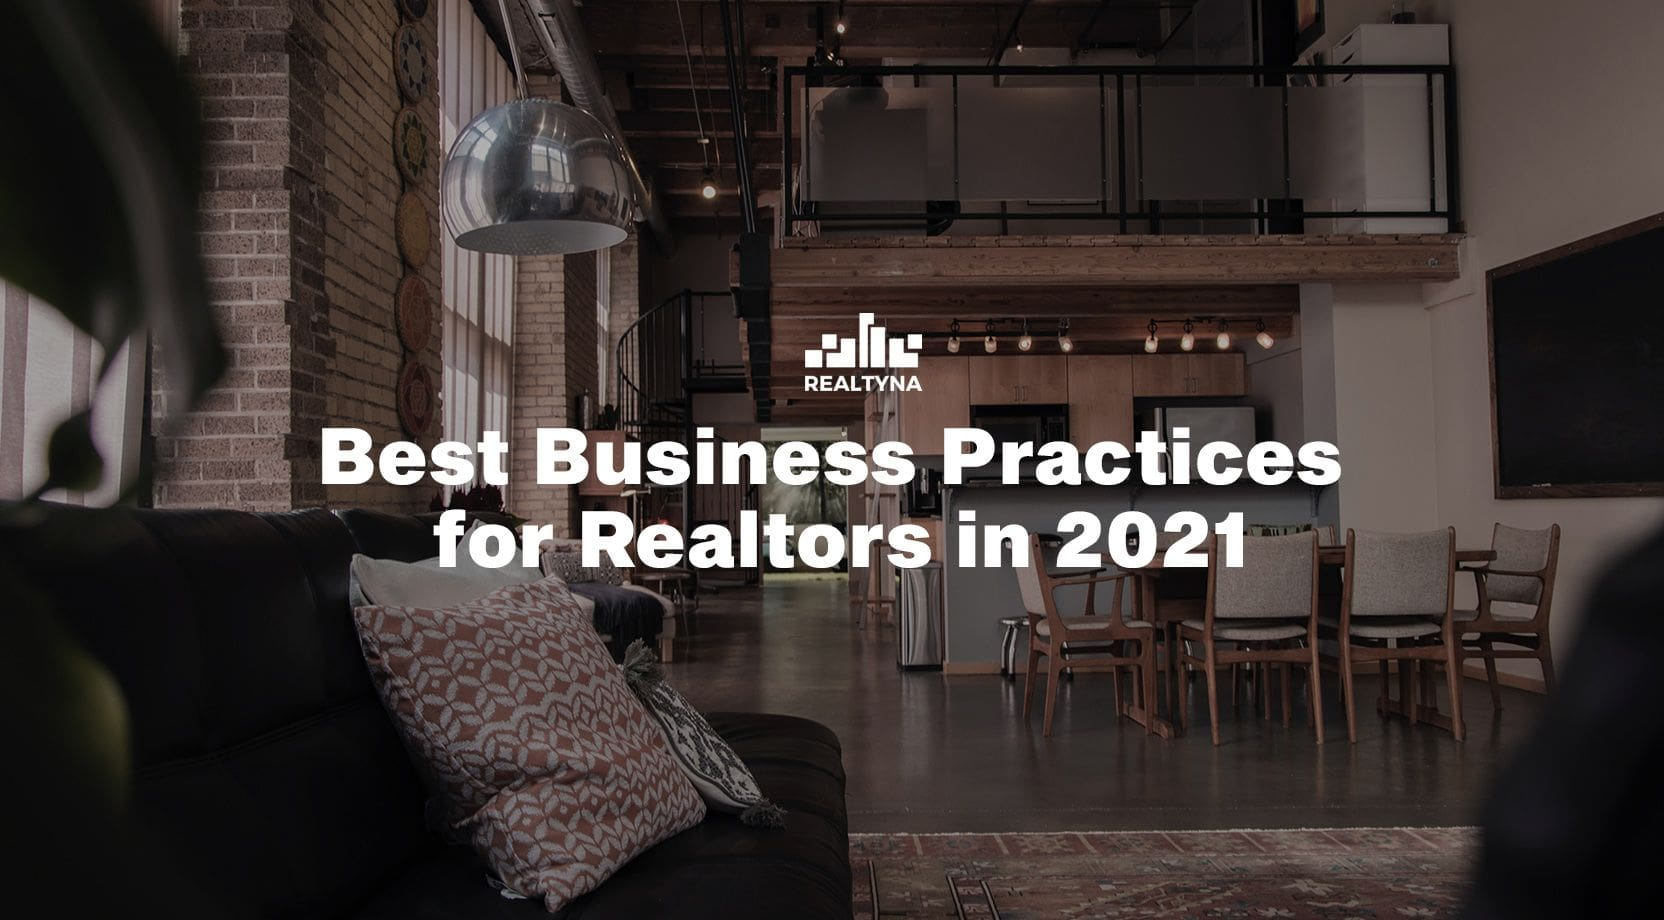 Best Business Practices for Realtors in 2021